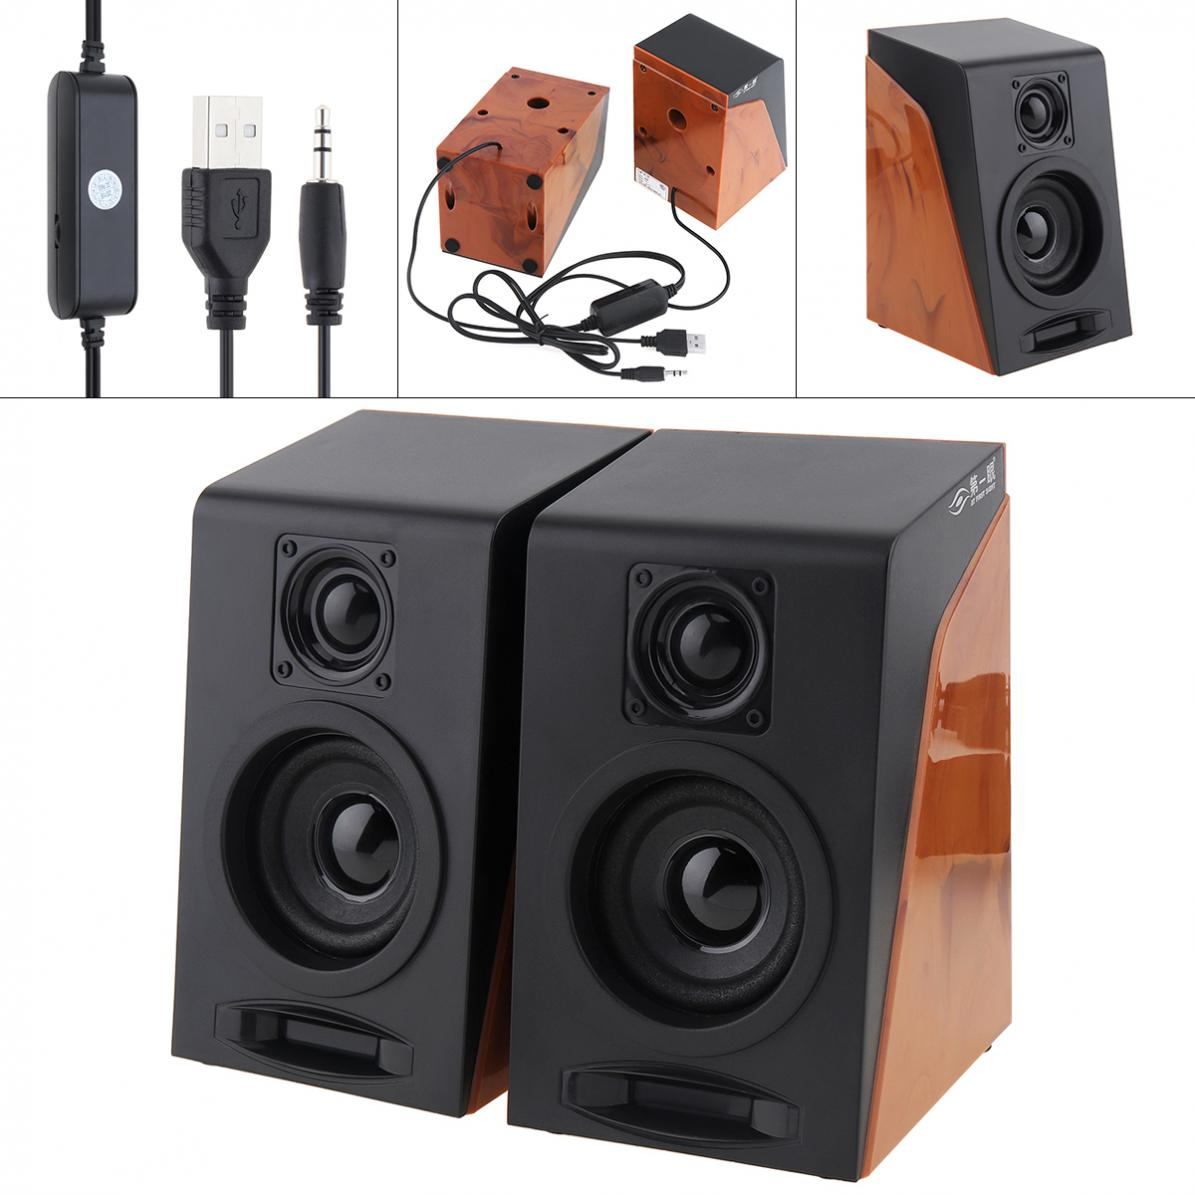 Full Antimagnetic 52mm 6W Mini USB 2.0 Computer Wood Subwoofer Speakers with 3.5mm Stereo Jack for PC / Laptop / Phone